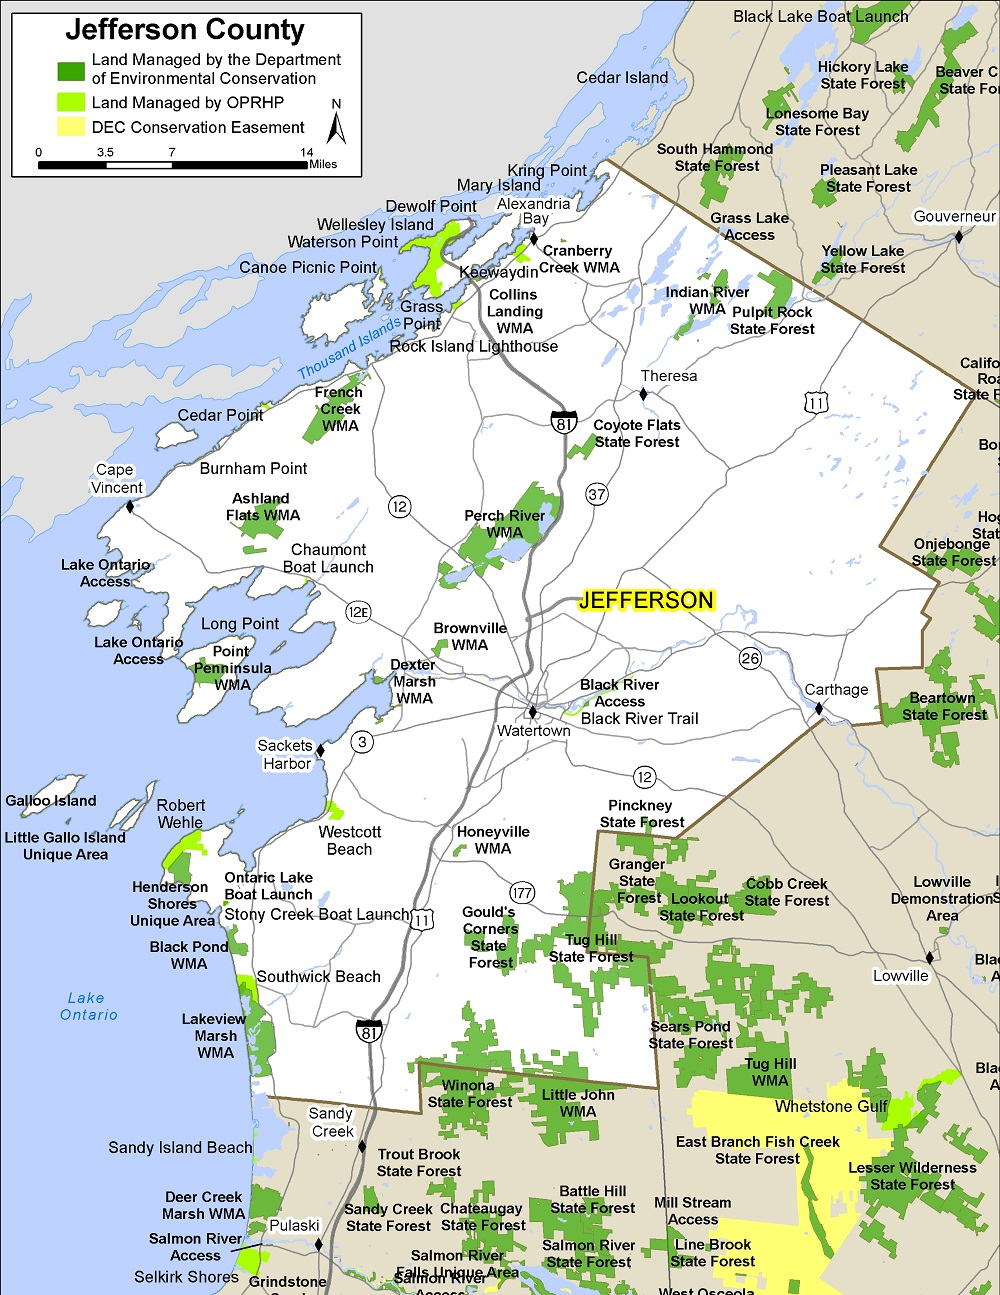 Jefferson County Map - NYS Dept. of Environmental Conservation